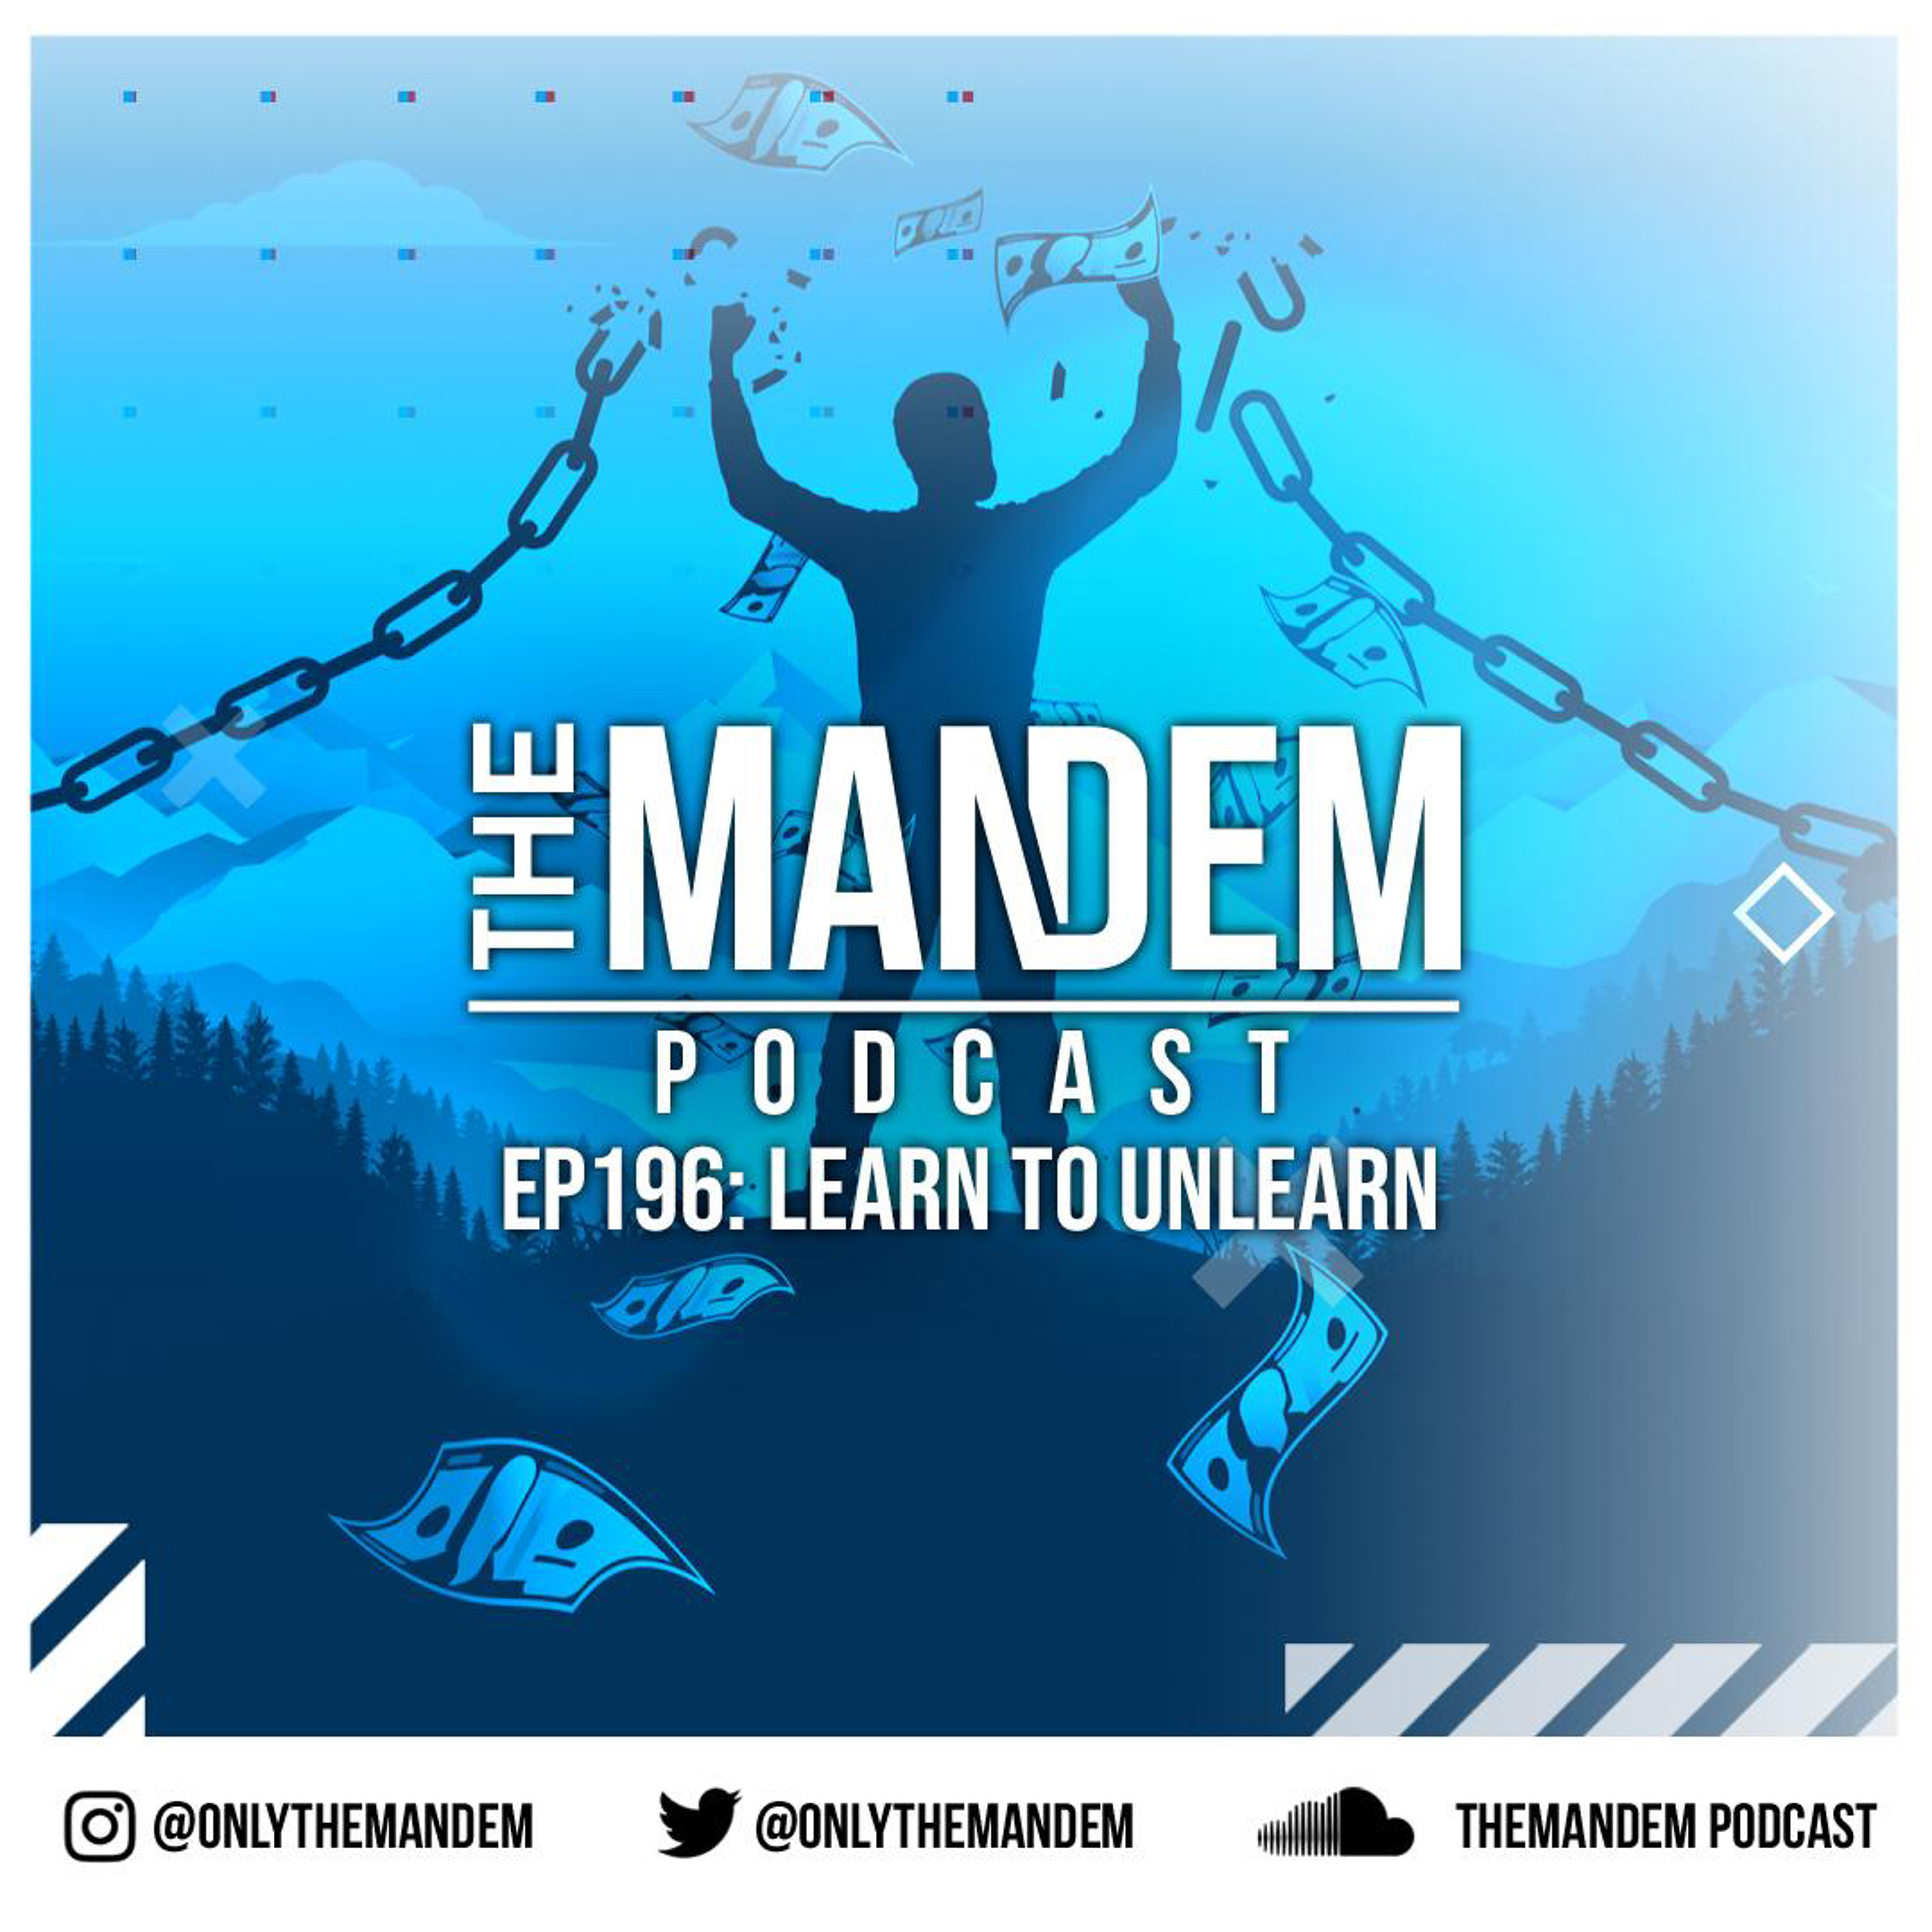 Episode 196 - Learn To Unlearn